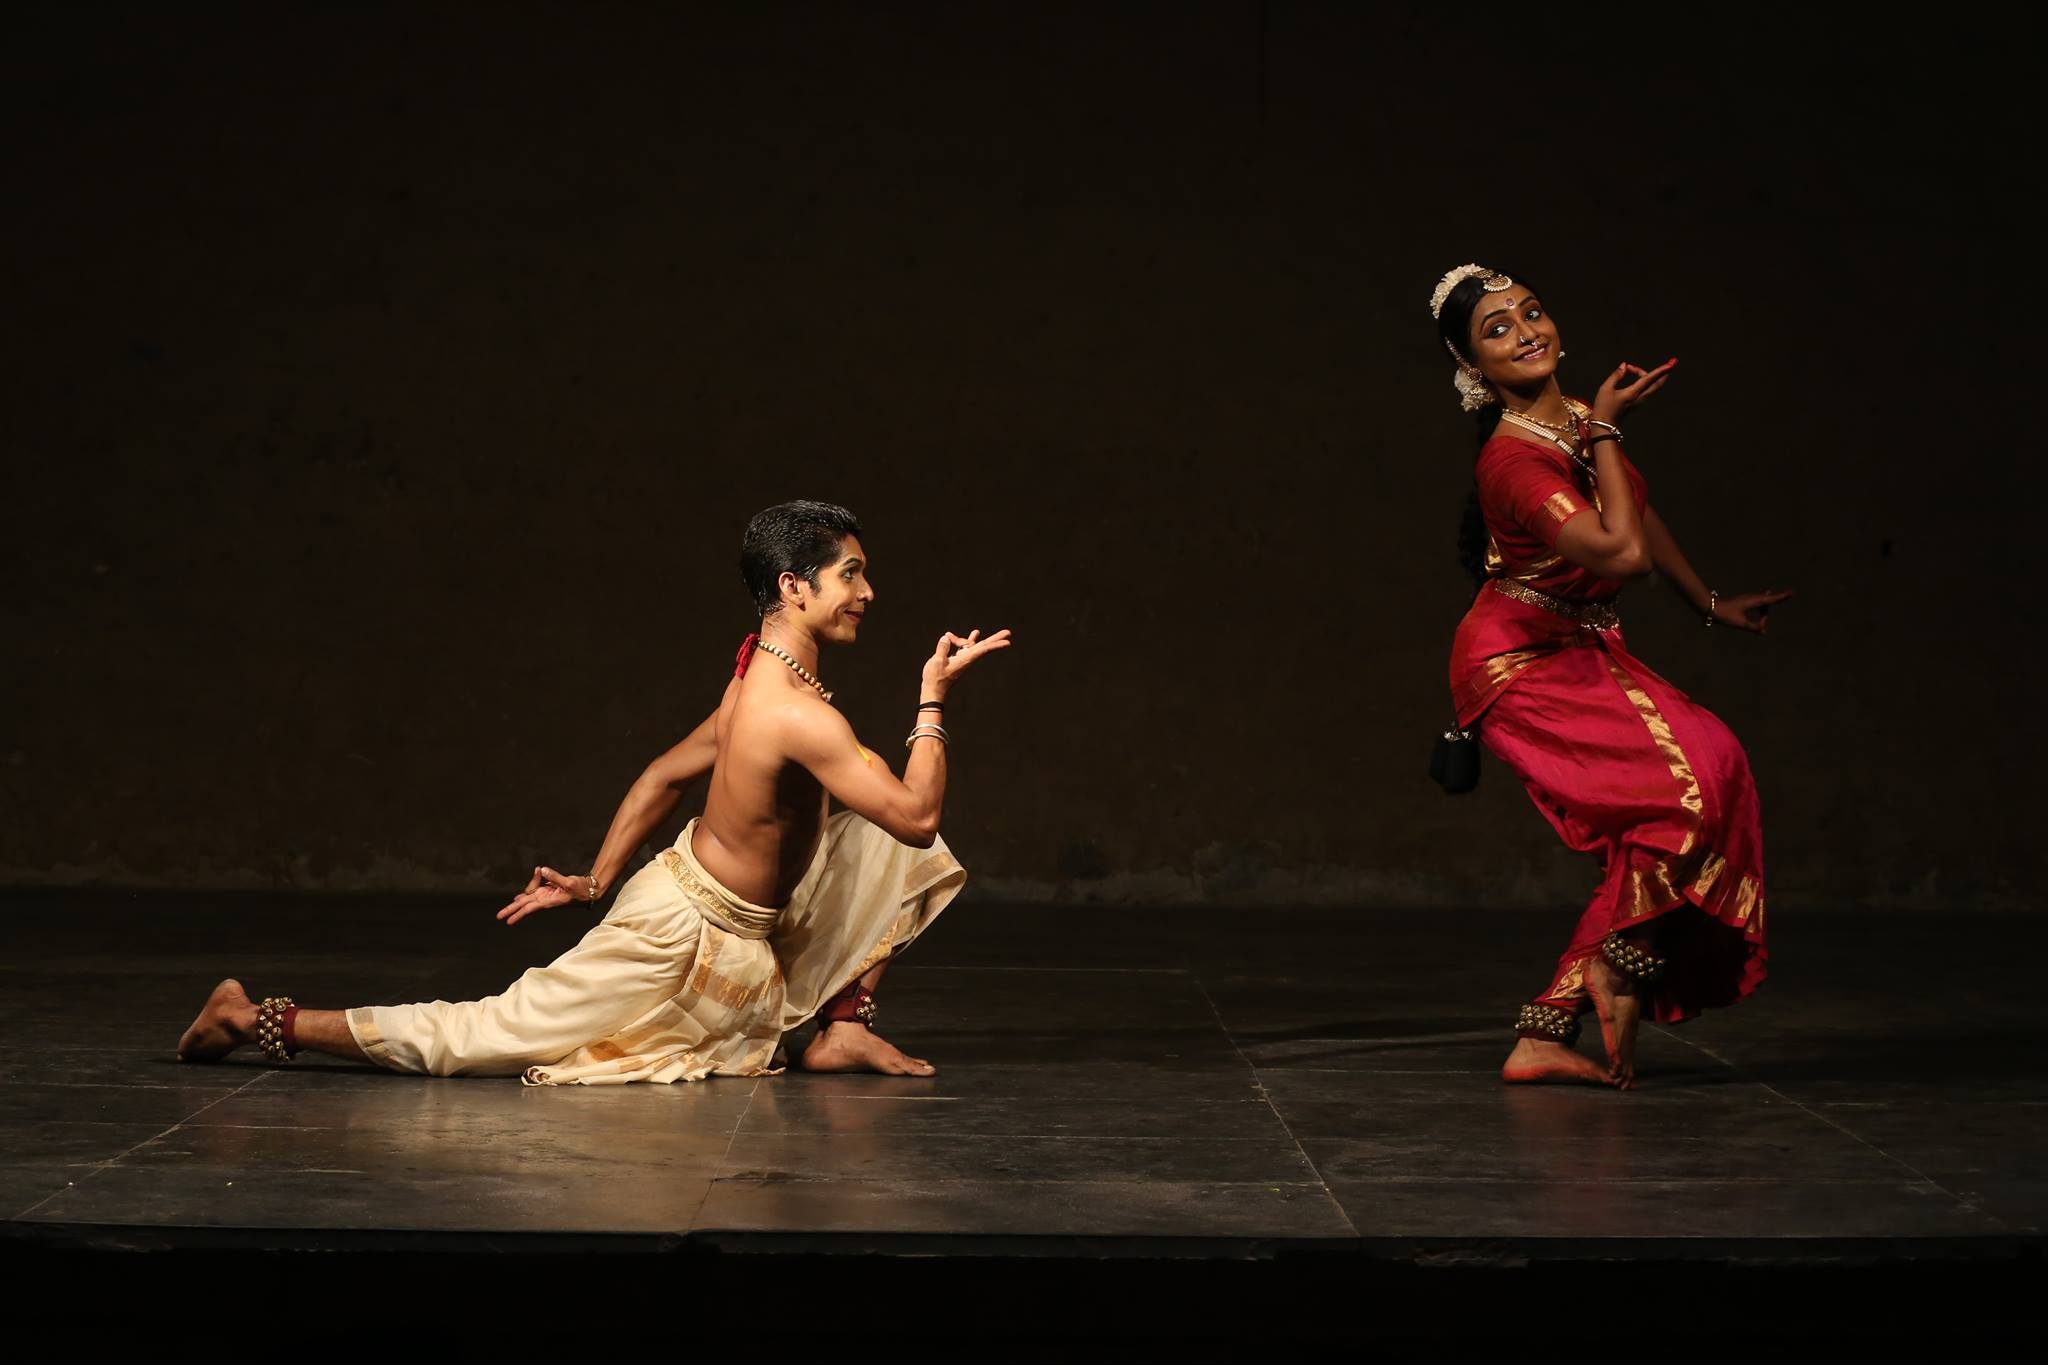 Renjith and Vijna, photo courtesy of Chitrakaavya Dance.